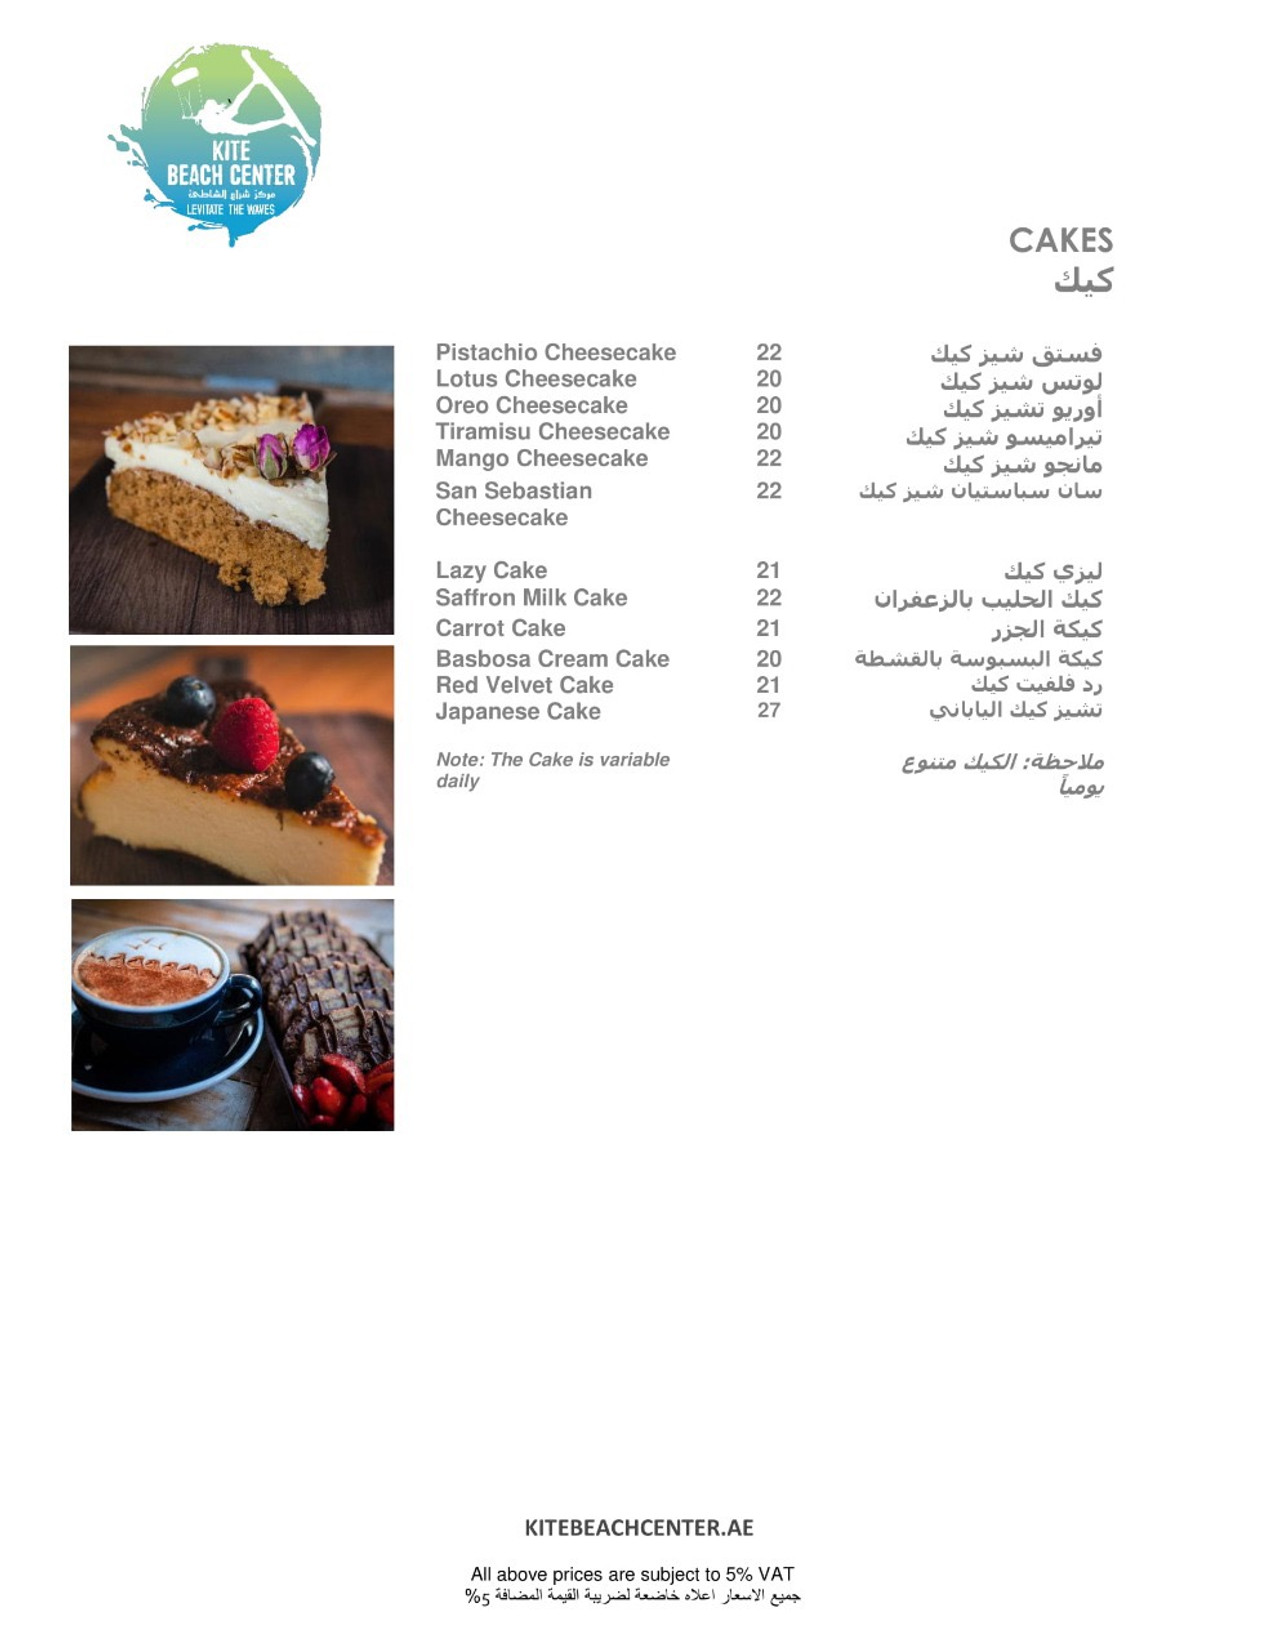 cakes new-page-001.jpg